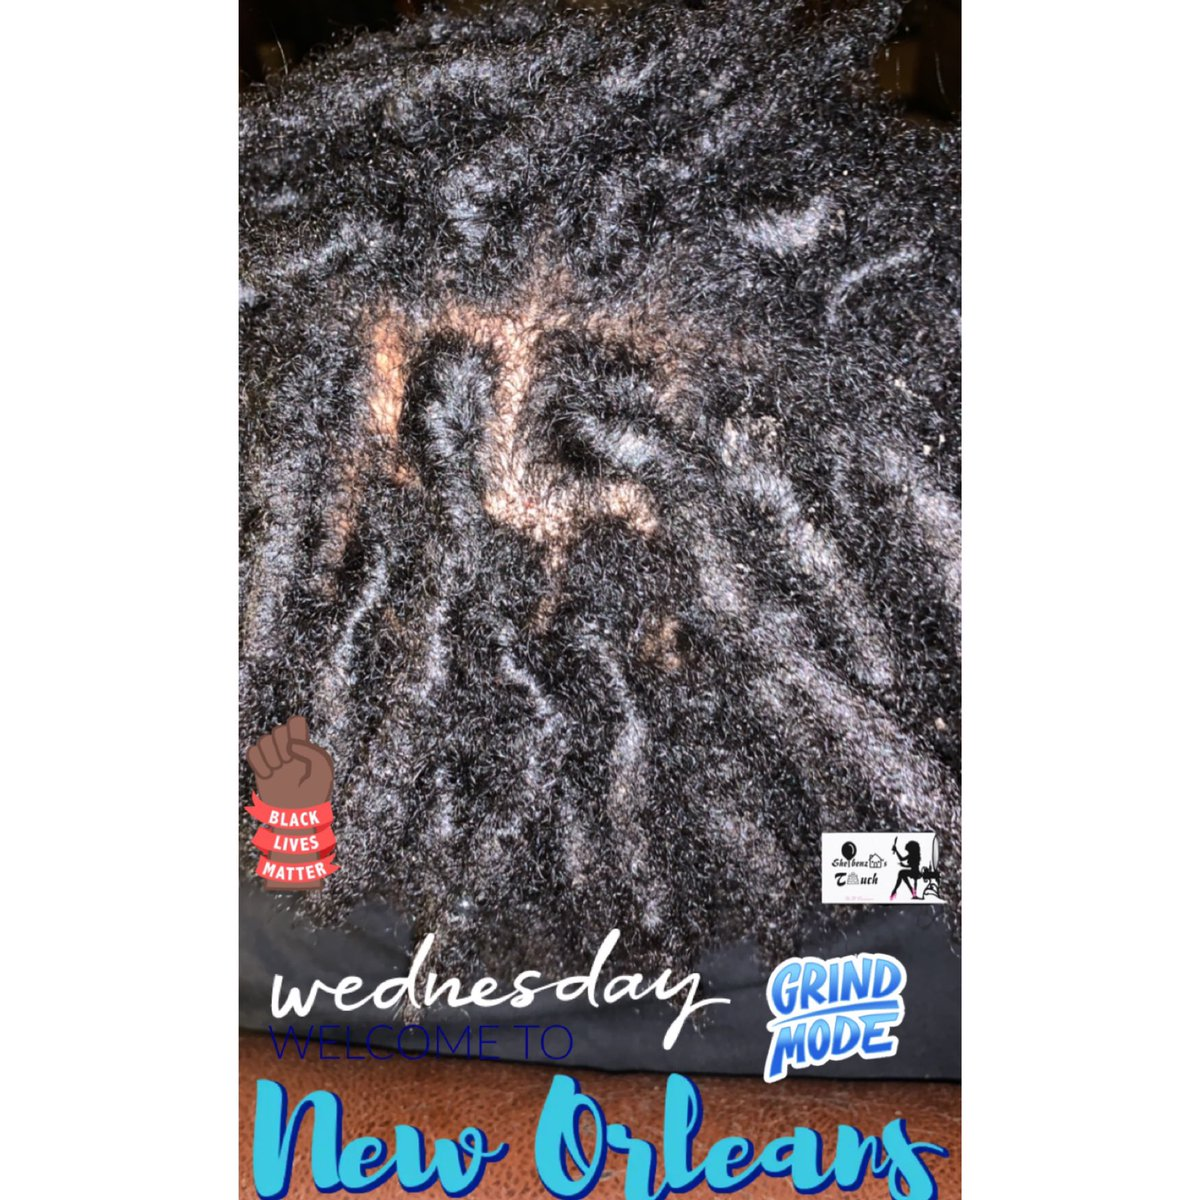 🗣 YES, I DO TRAVEL ‼️. .Client T O D A Y 💚💵Pat's Hair. .🔥 #Dreads wash / retwist / style 🔥. .(( 3 #TreeTwist into 2 #Braids )). . #FOLLOW MY 💈#Hair PAGE 💈for ending‼️. @shelbenzas_touch @shelbenzas_touch @shelbenzas_touch  @shelbenzas_touch 🗣🗣🙏🏾🙏🏾.